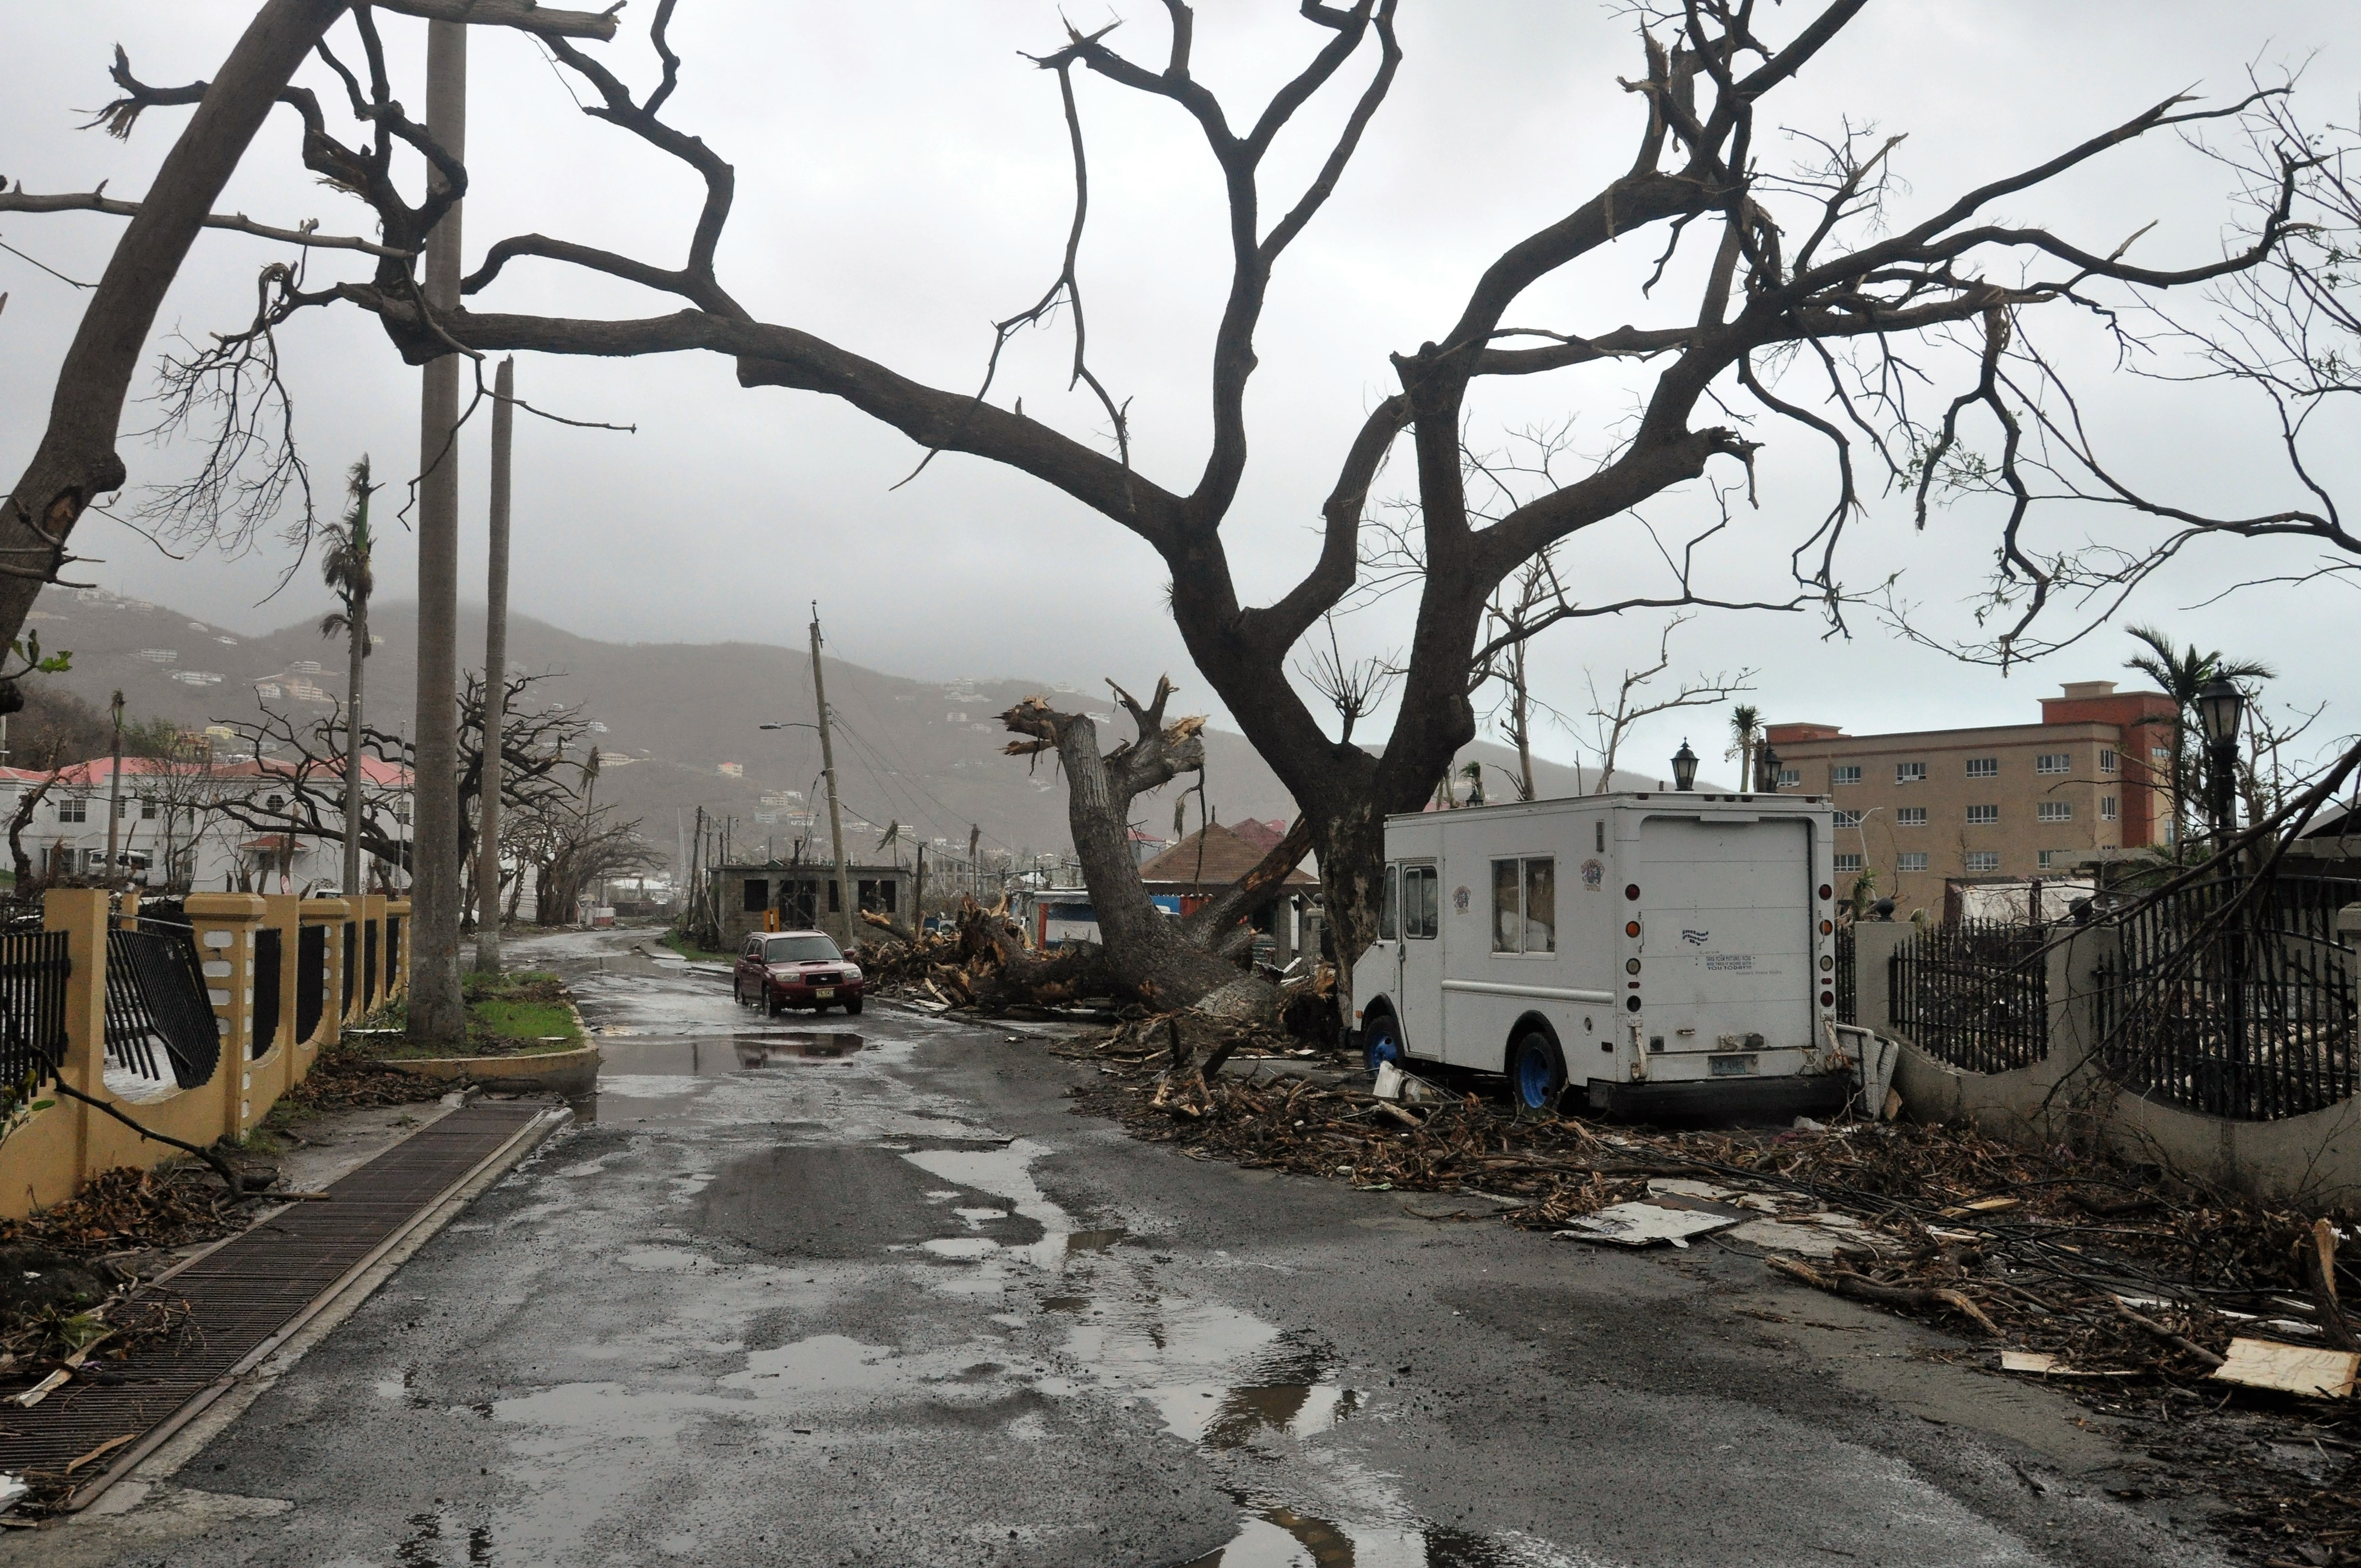 <div class='meta'><div class='origin-logo' data-origin='none'></div><span class='caption-text' data-credit='Freeman Rogers/AP Photo'>Trees stand barren and debris lays on the roadside, caused by Hurricane Maria in Road Town, on the island of Tortola, in the British Virgin Islands, early Wednesday, Sept. 20.</span></div>